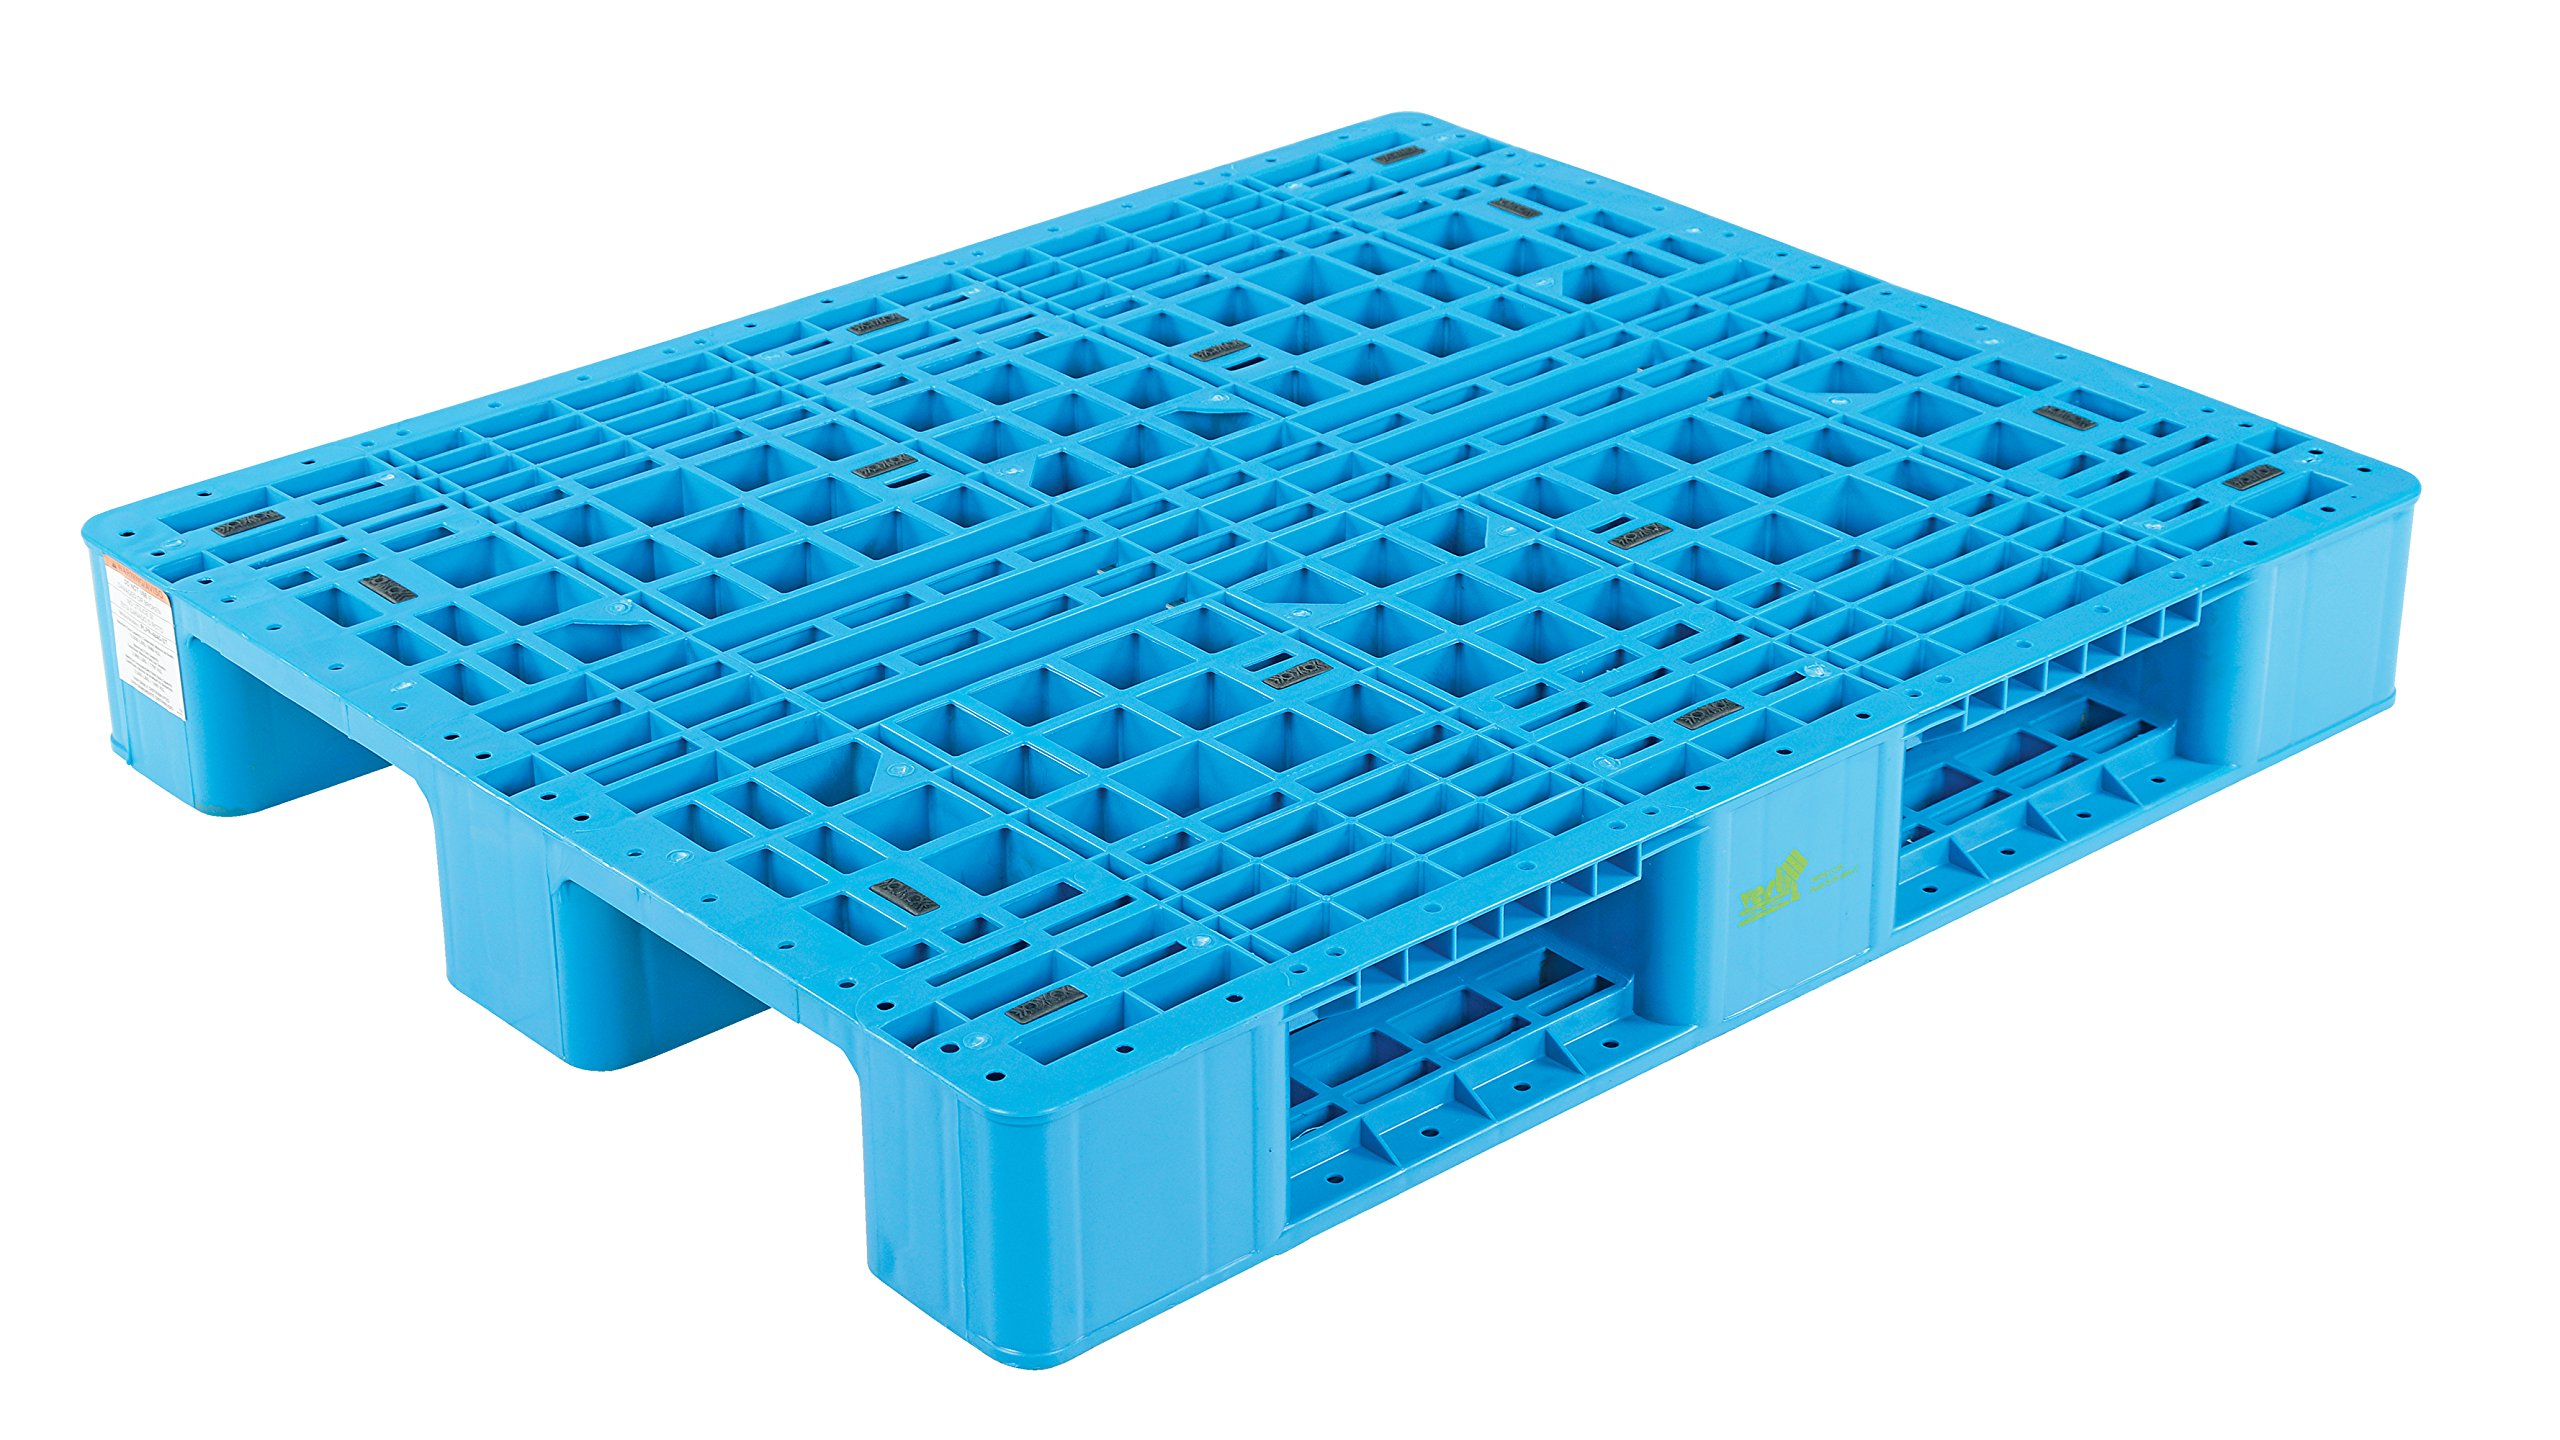 Vestil PLPR-4840-ST Rackable Blue Polyethylene Pallet with 4 Way Entry, 13200 lbs Capacity, 39.25'' Length, 47.125'' Width, 6-1/2'' Height by Vestil